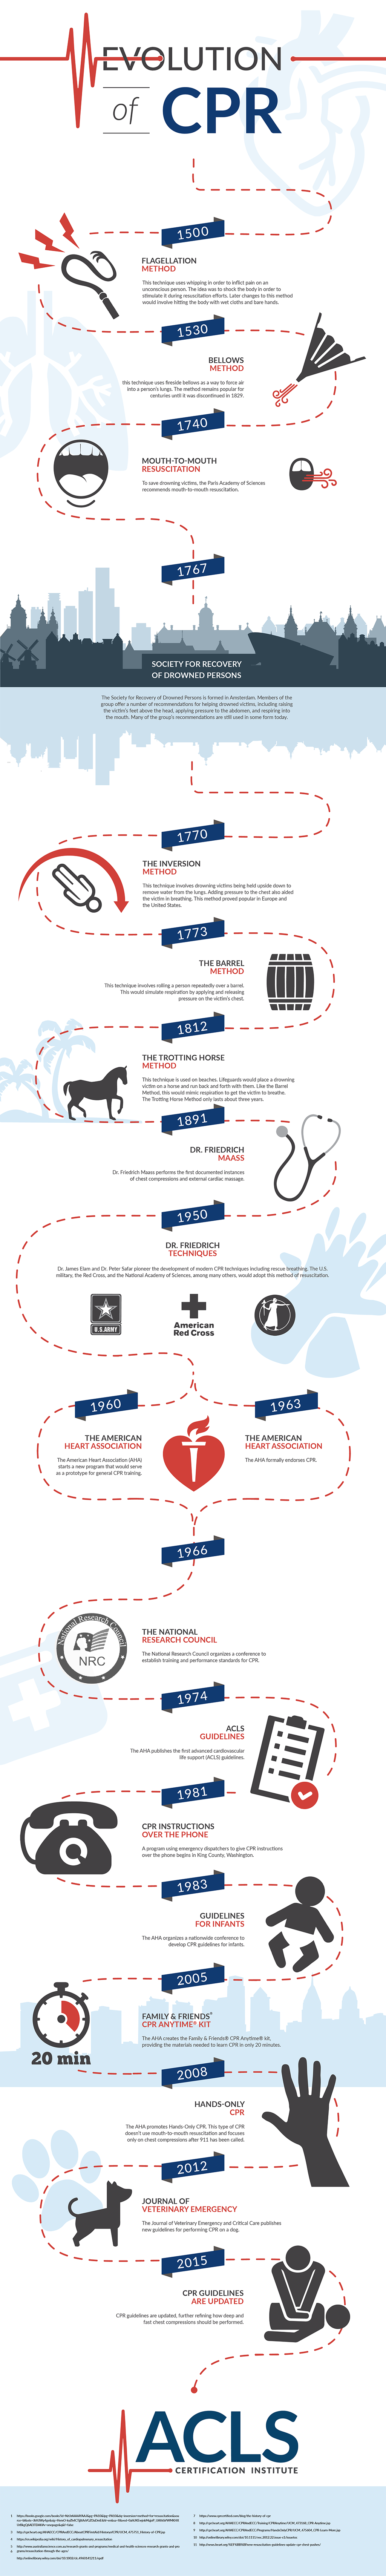 The Evolution of CPR by ACLS Certification Institute